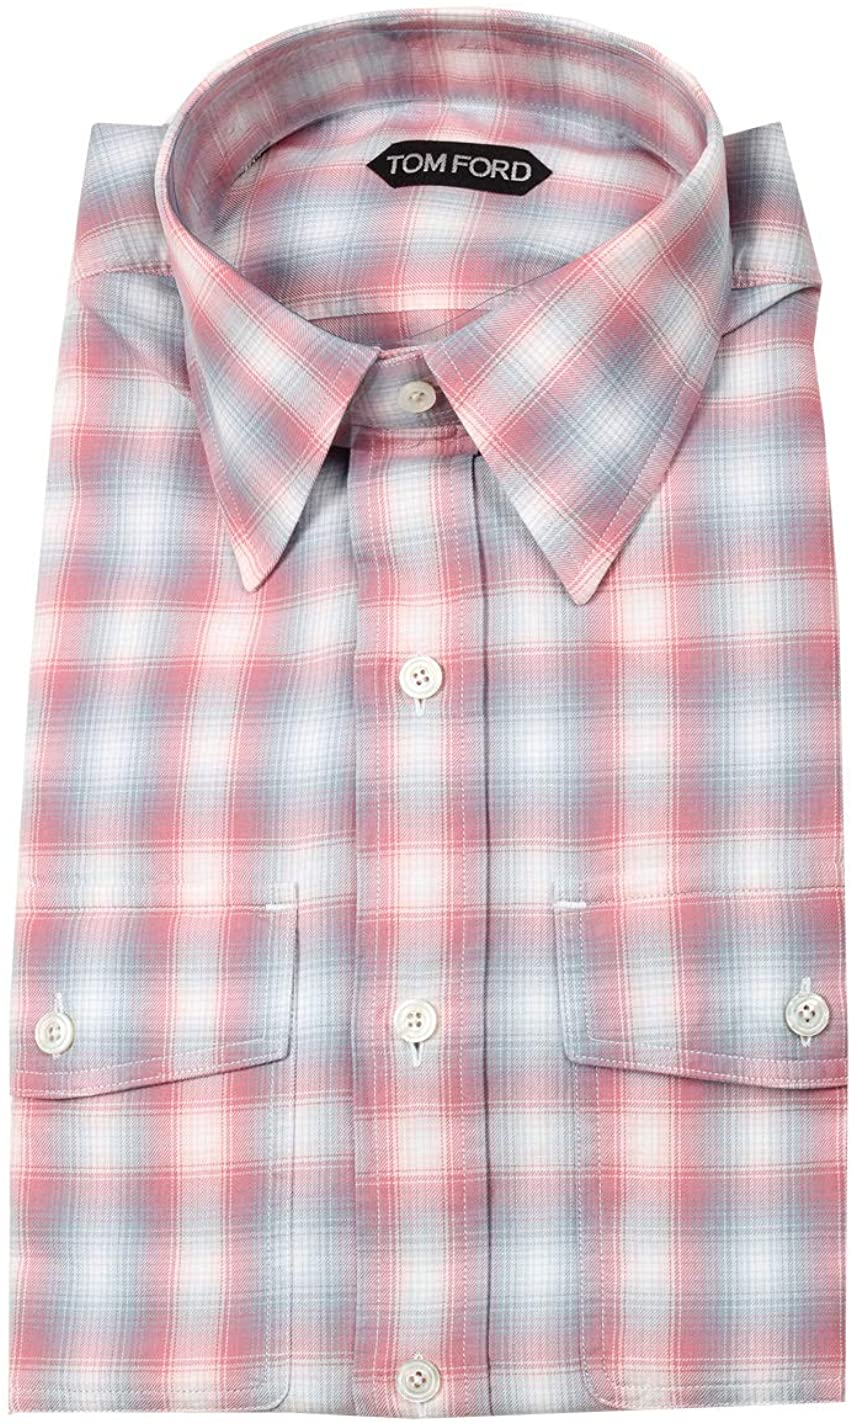 CL - Tom Ford Checked Red Blue Casual Shirt Size 39/15,5 U.S.